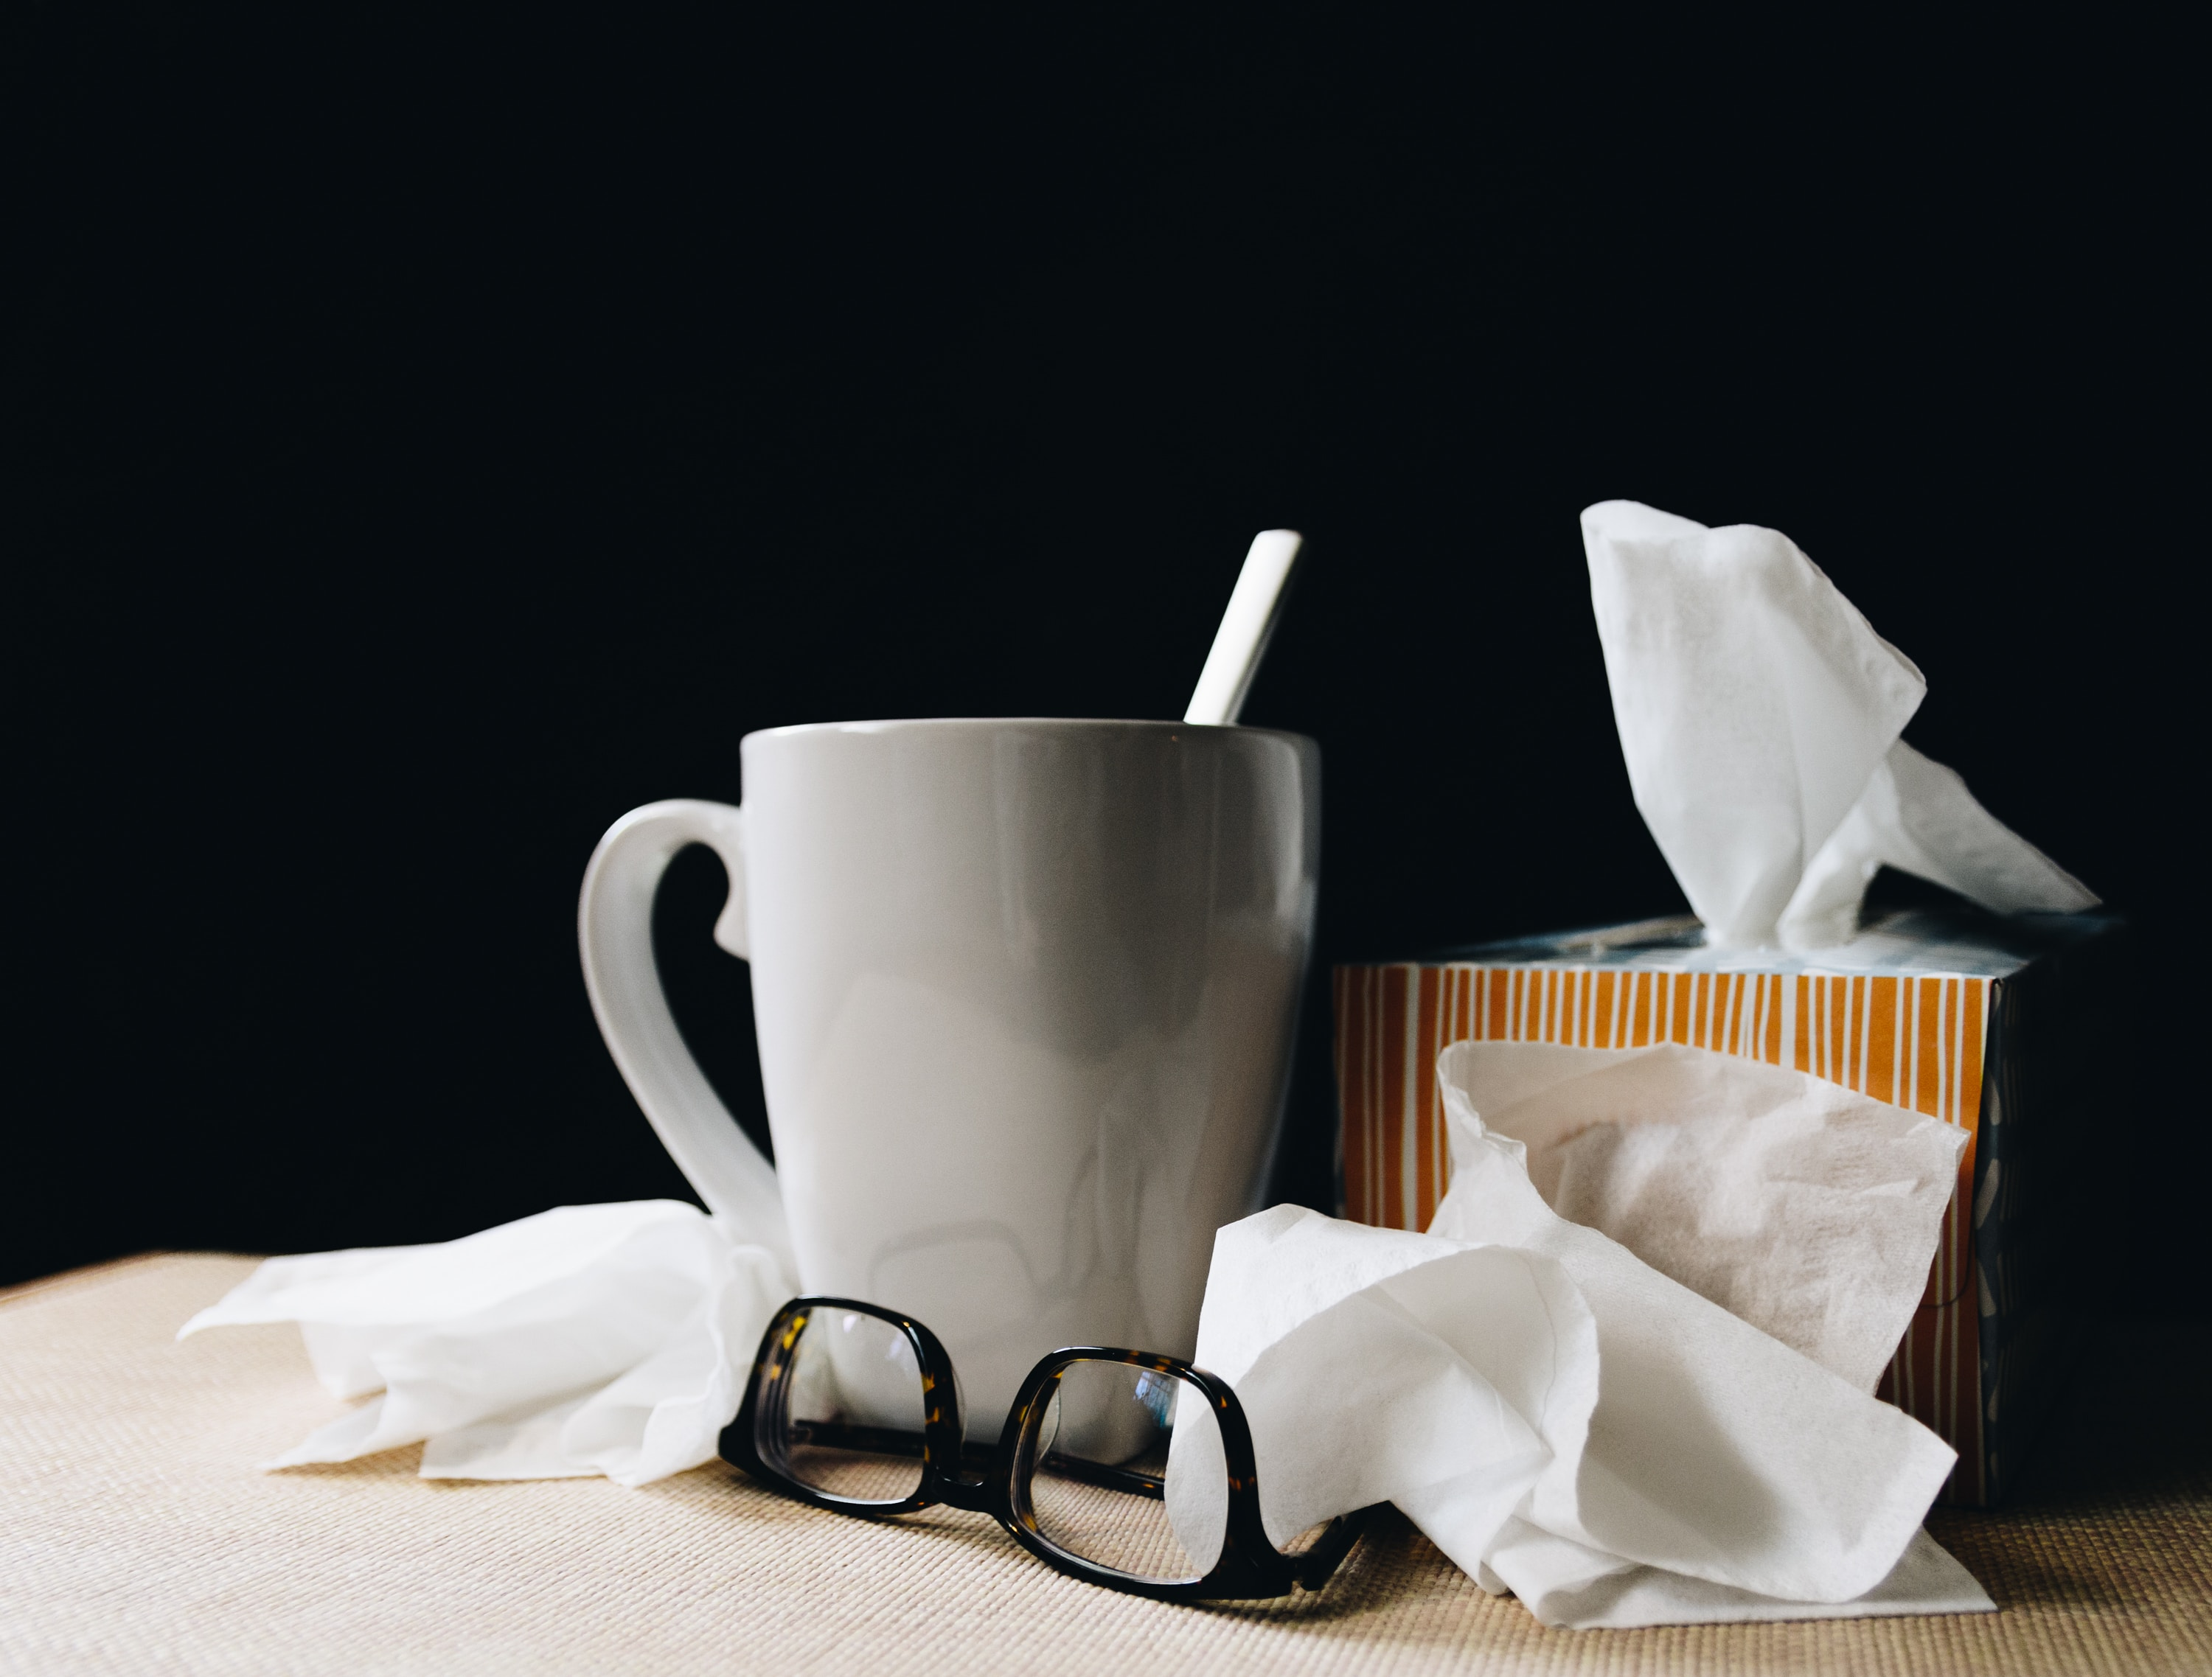 Coffee mug and tissues